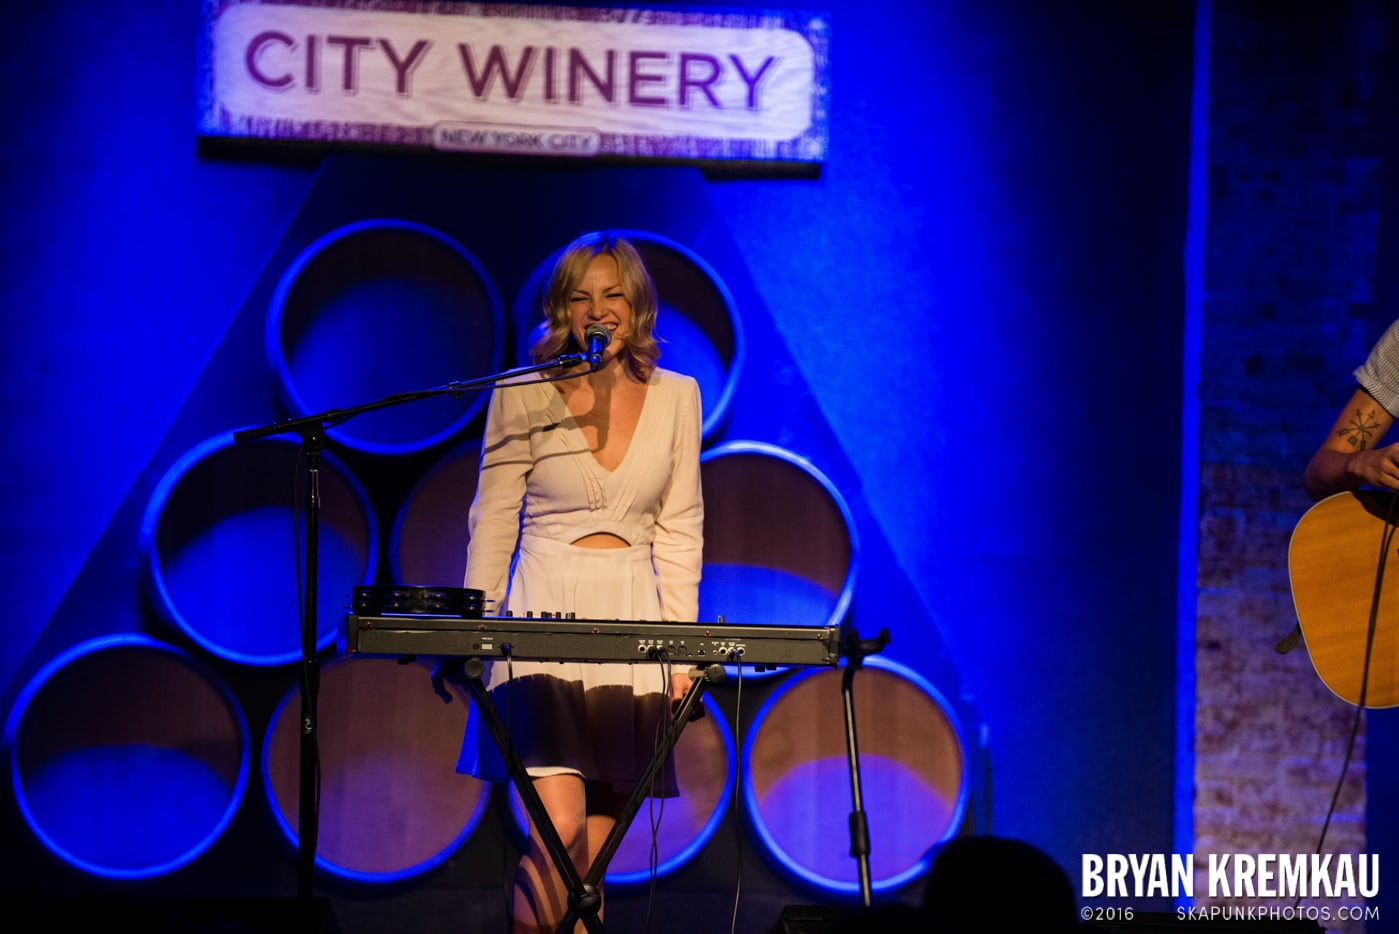 Cory Chisel and The Wandering Sons @ City Winery, NYC - 6.26.13 (19)